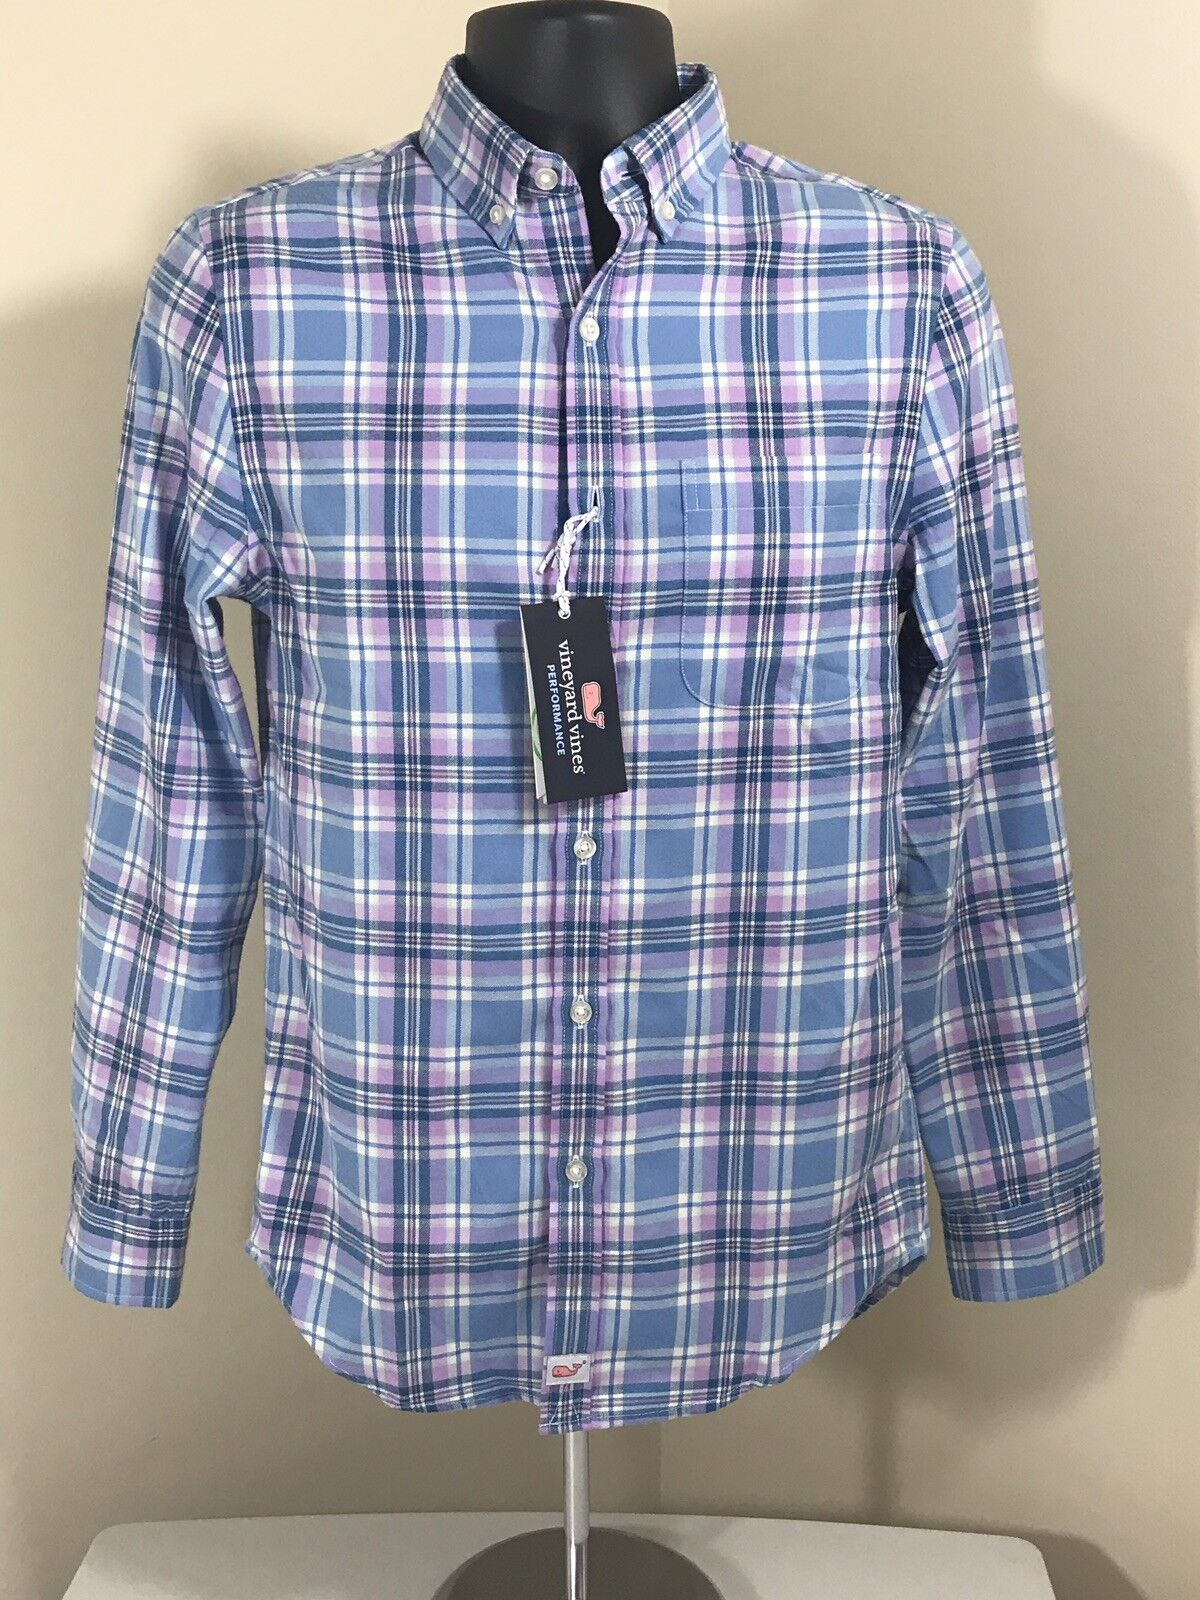 Vineyard Vines Slim Fit Ocean Walk Plaid Long Sleeve Shirt